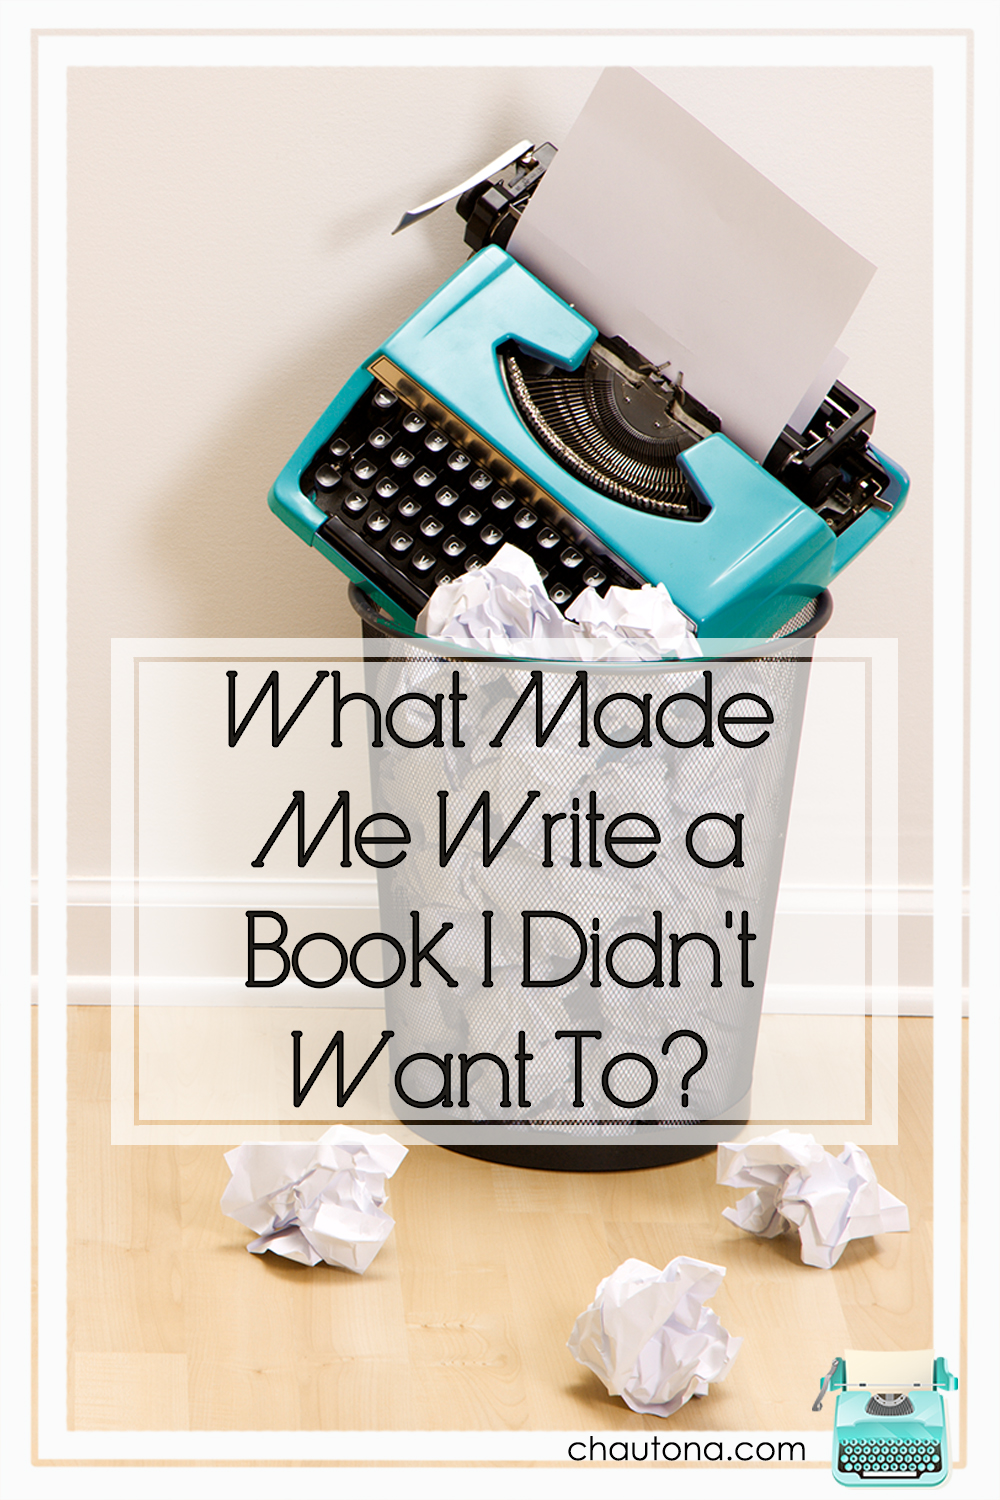 What Made Me Write a Book I Didn't Want To?